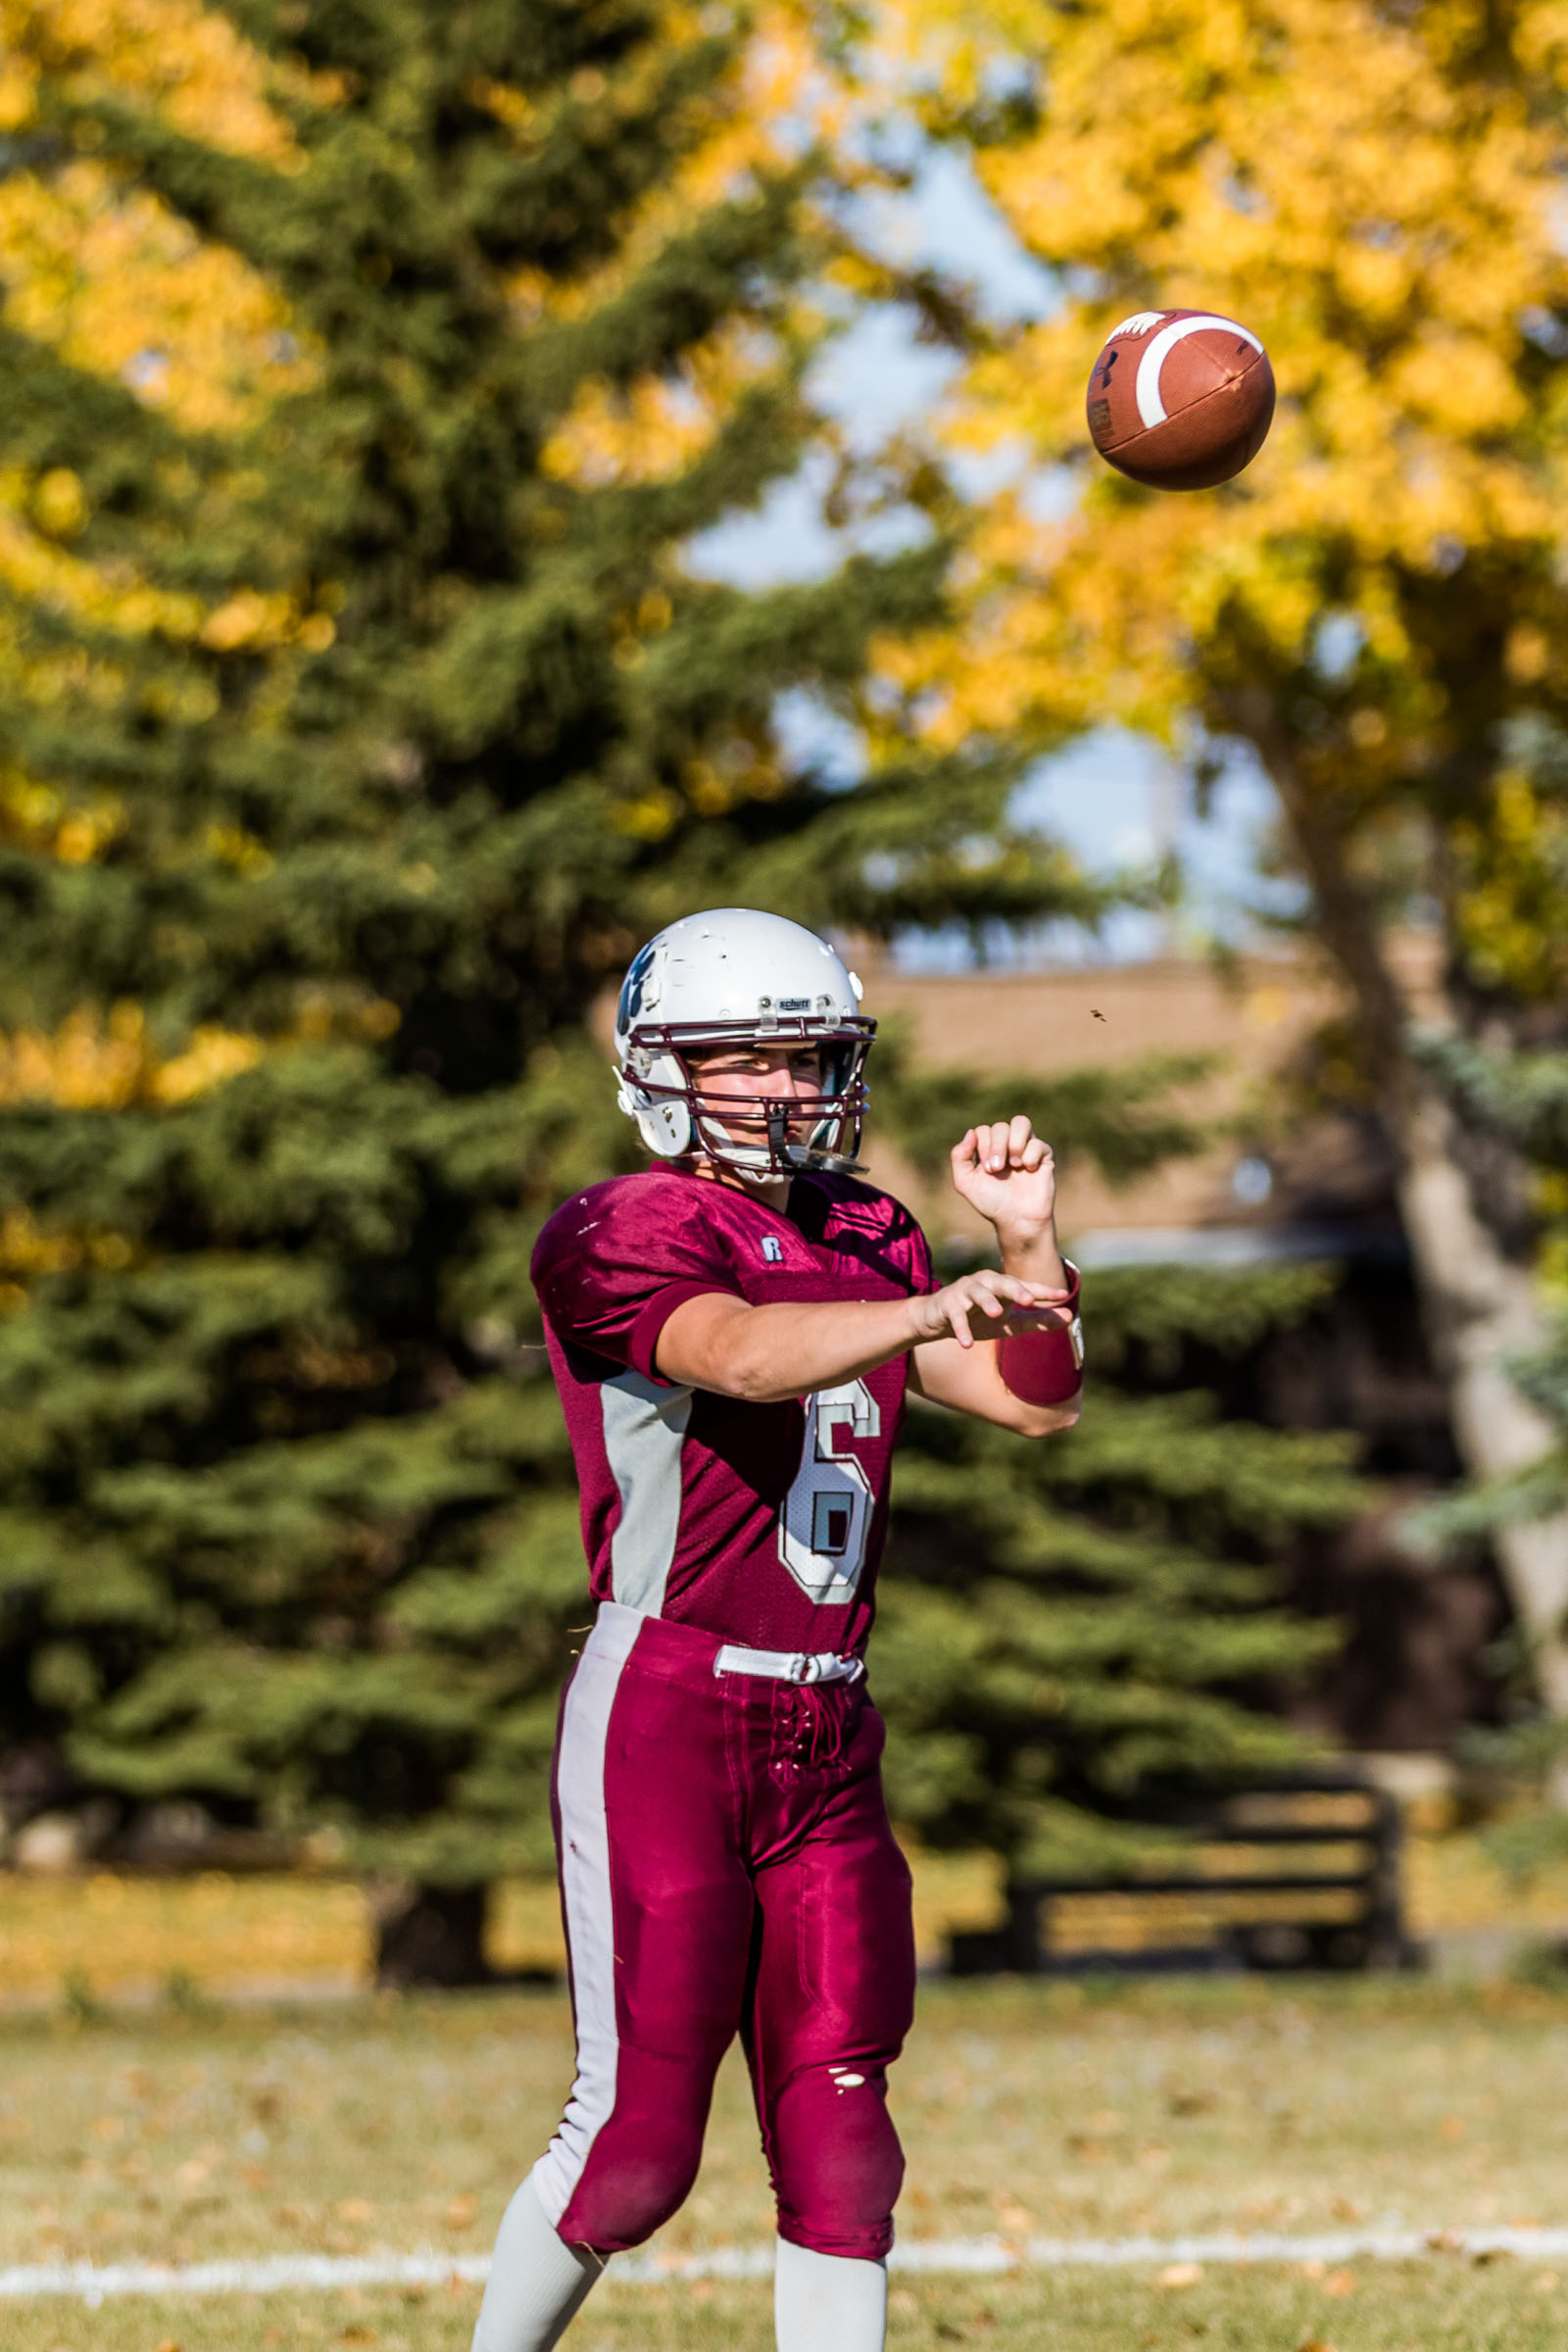 0014_macklinsabres_haguepanthers_football_September 30, 2016.jpg